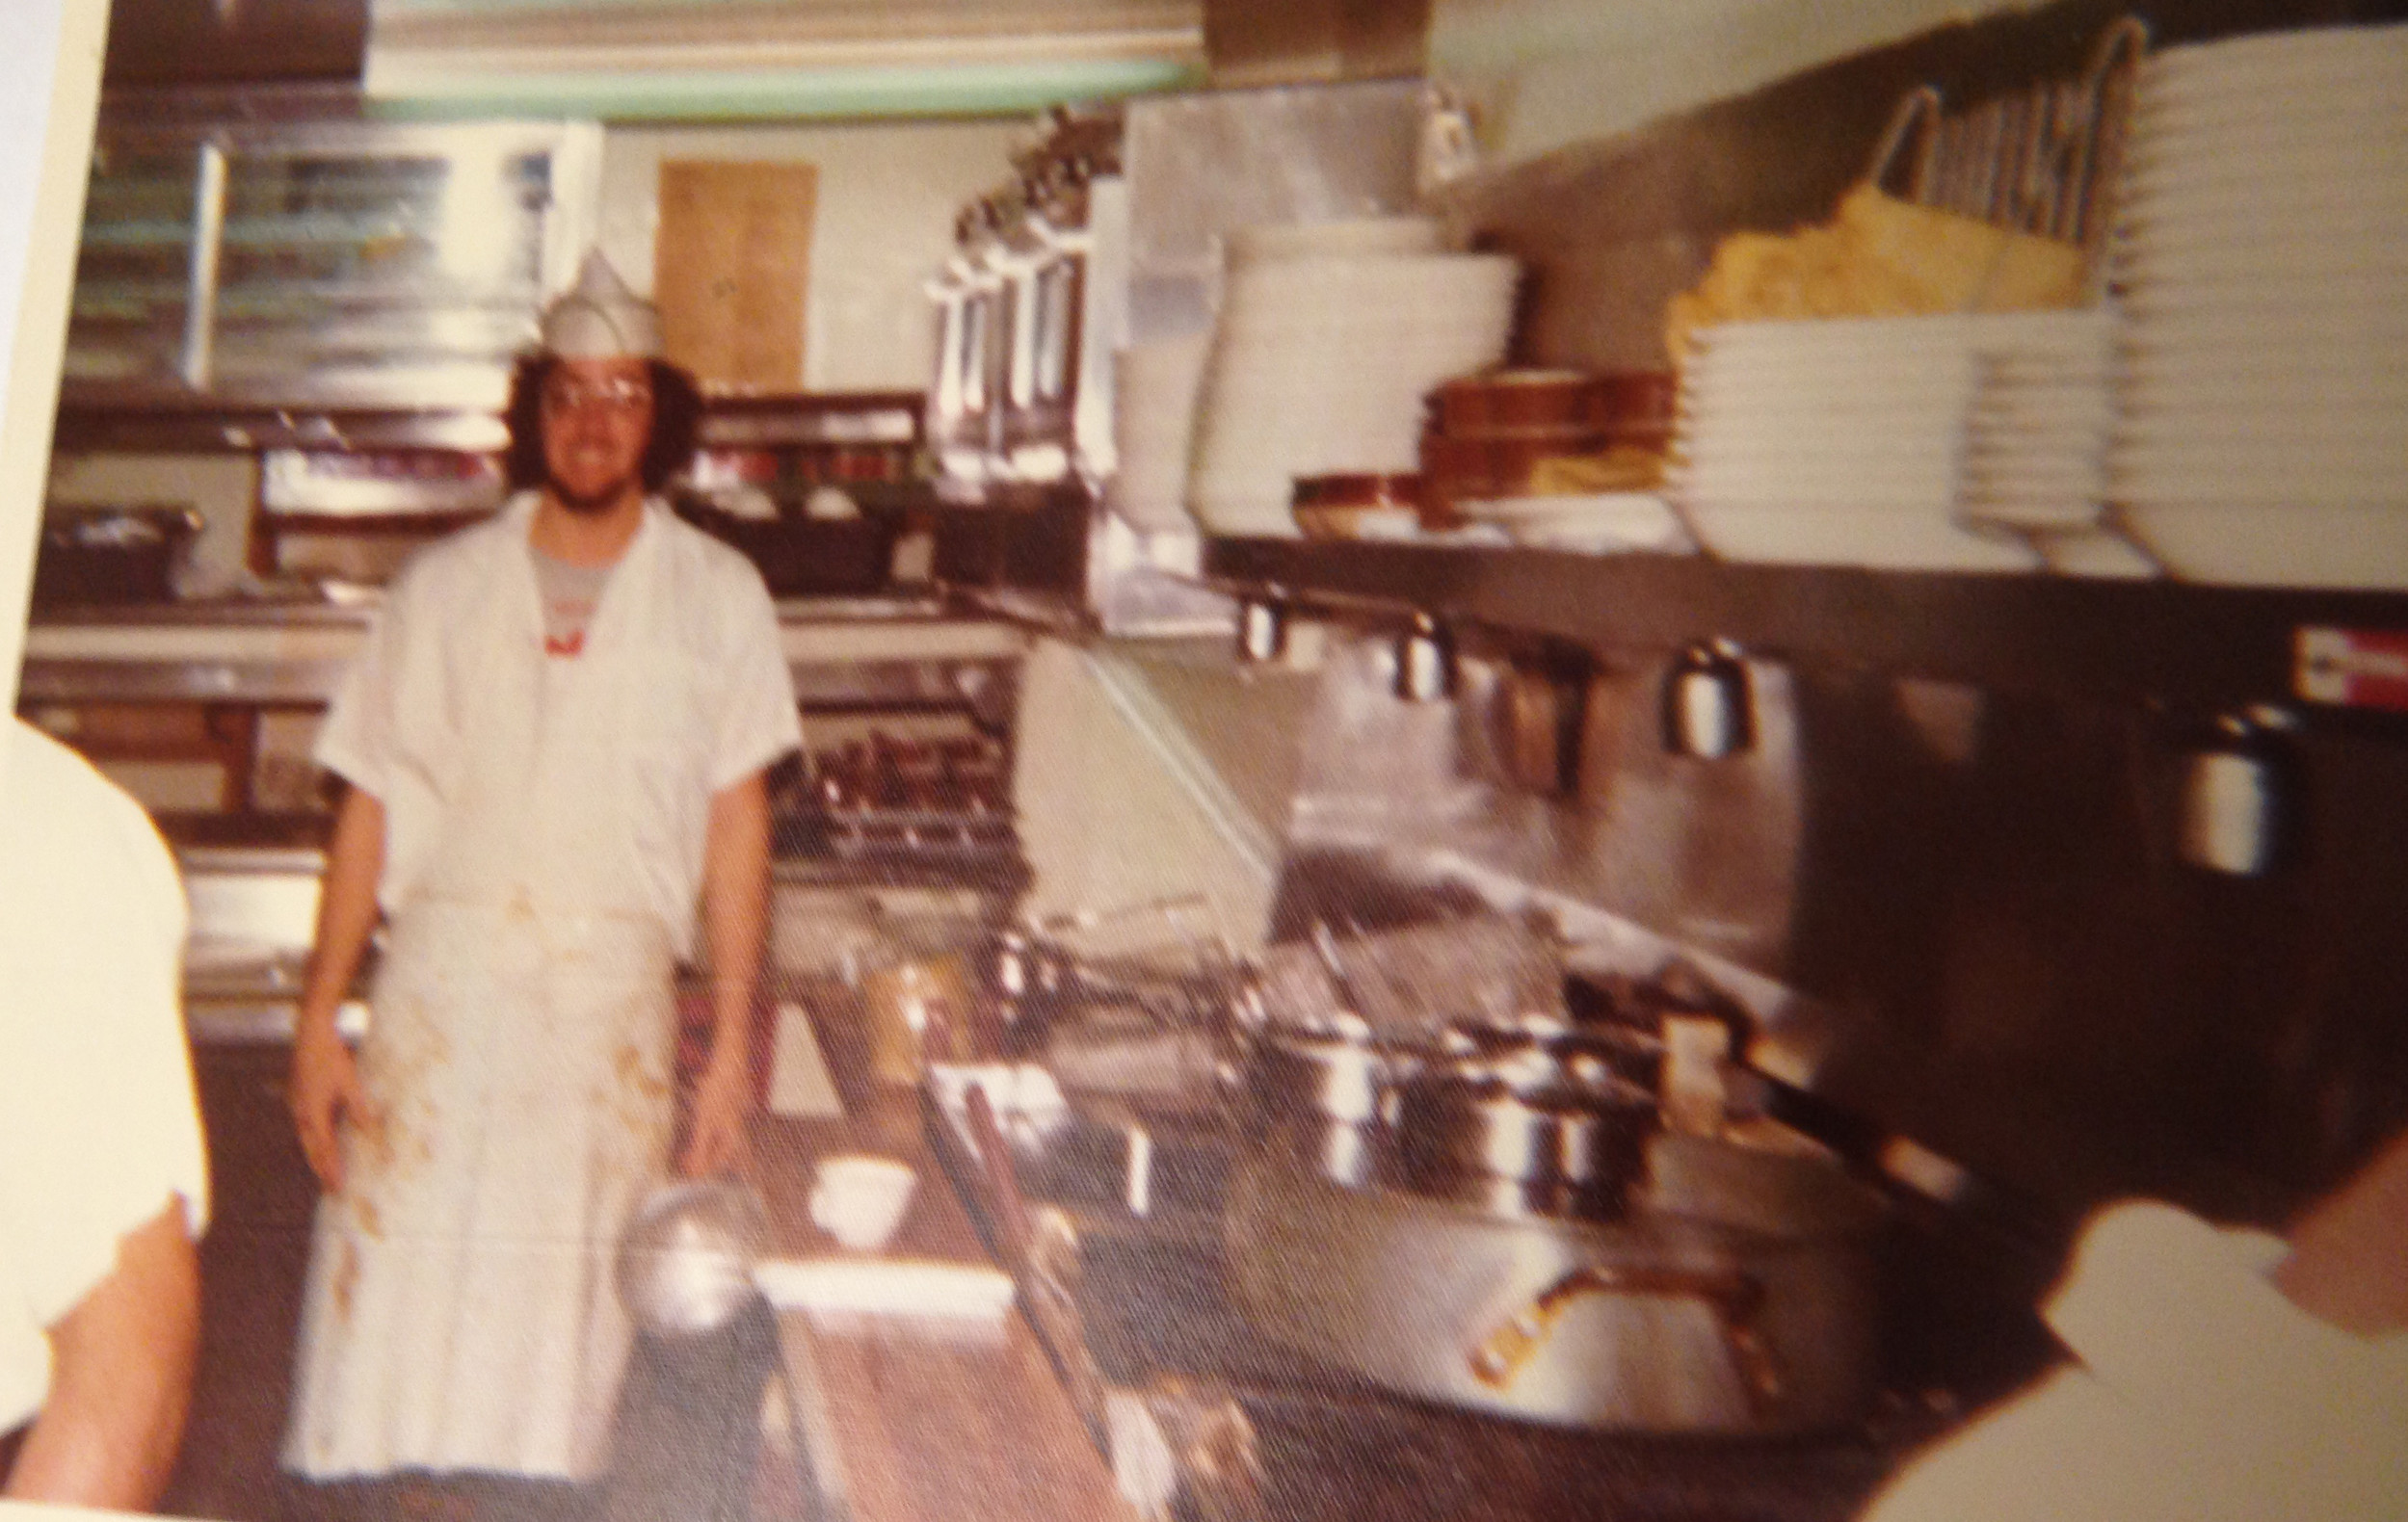 A blurry portrait of a young man as a cook in the basement kitchen at Rocky Raccoon's Saloon in 1975 in Washington, D.C.